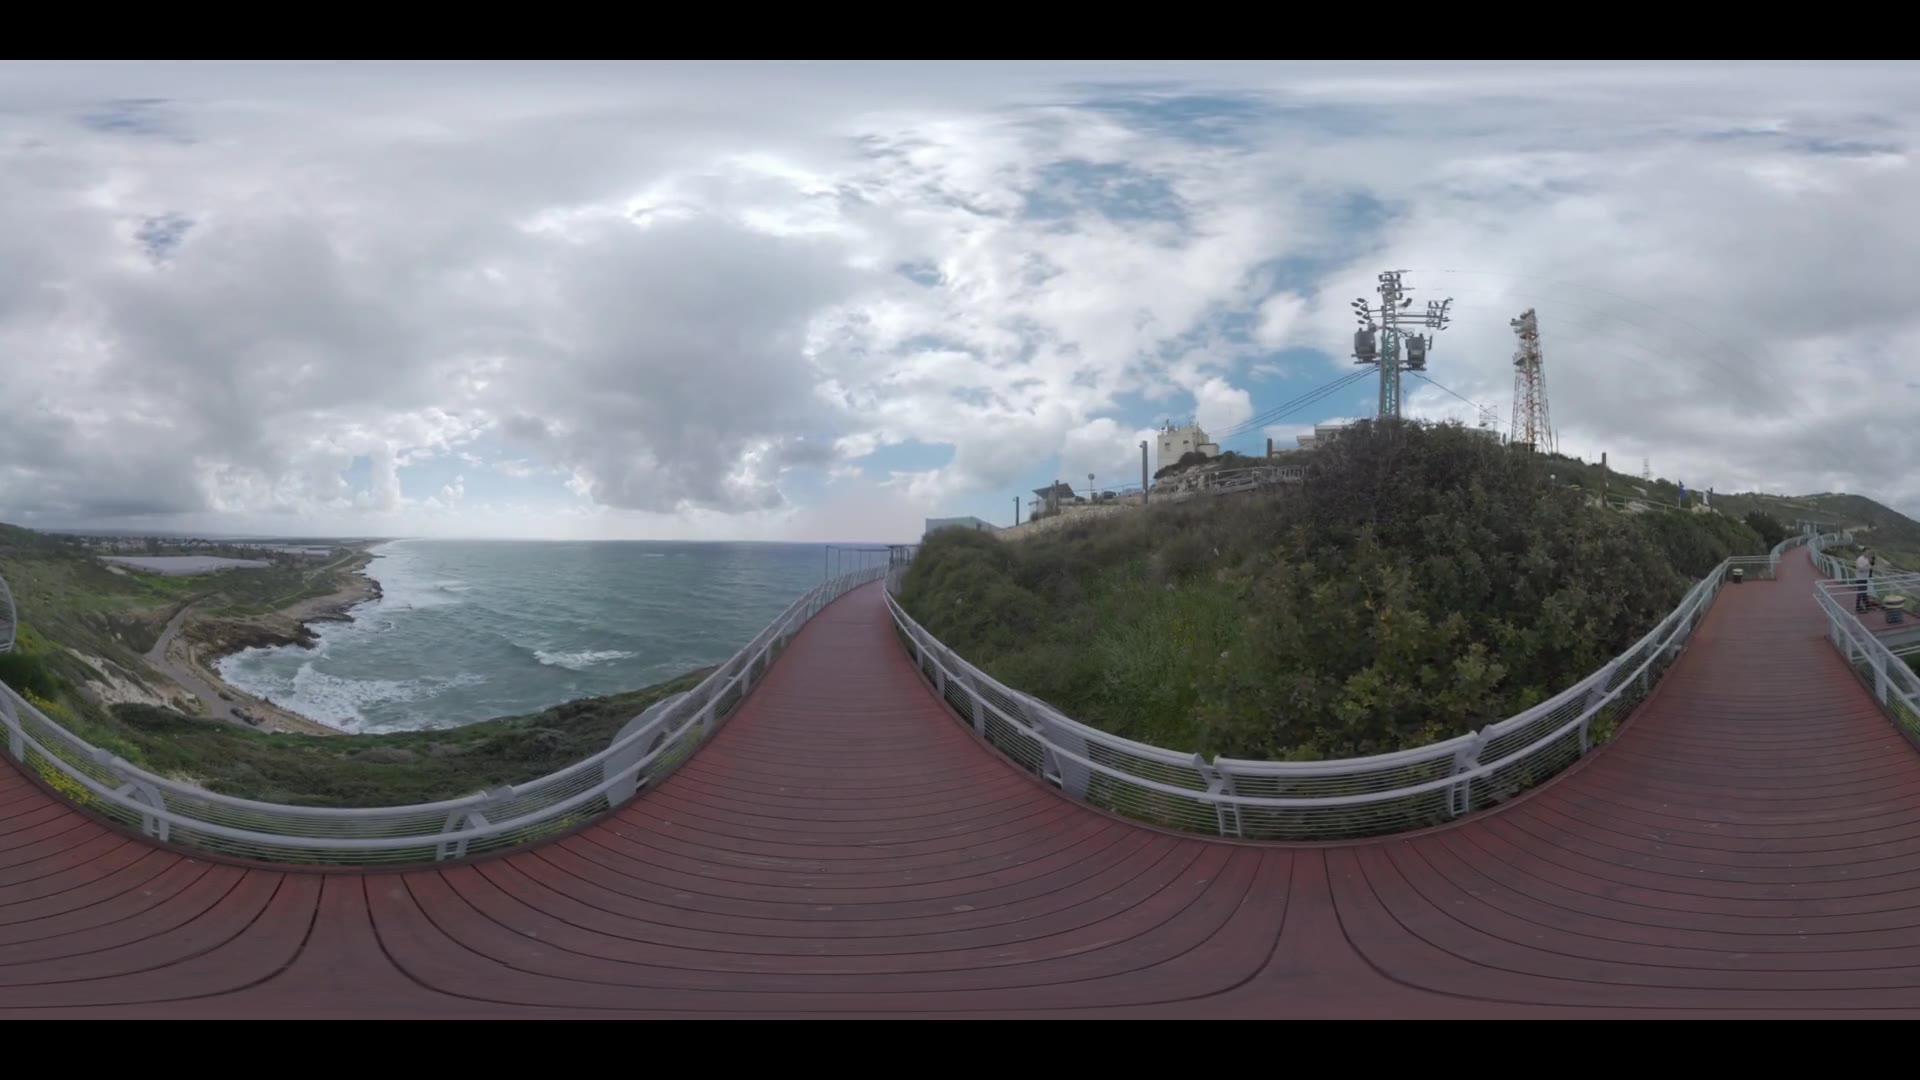 360 VR video. Landscape with Israel seashore. View from the Rosh HaNikra. Man photographer making shots of nature from the walkway on the hill